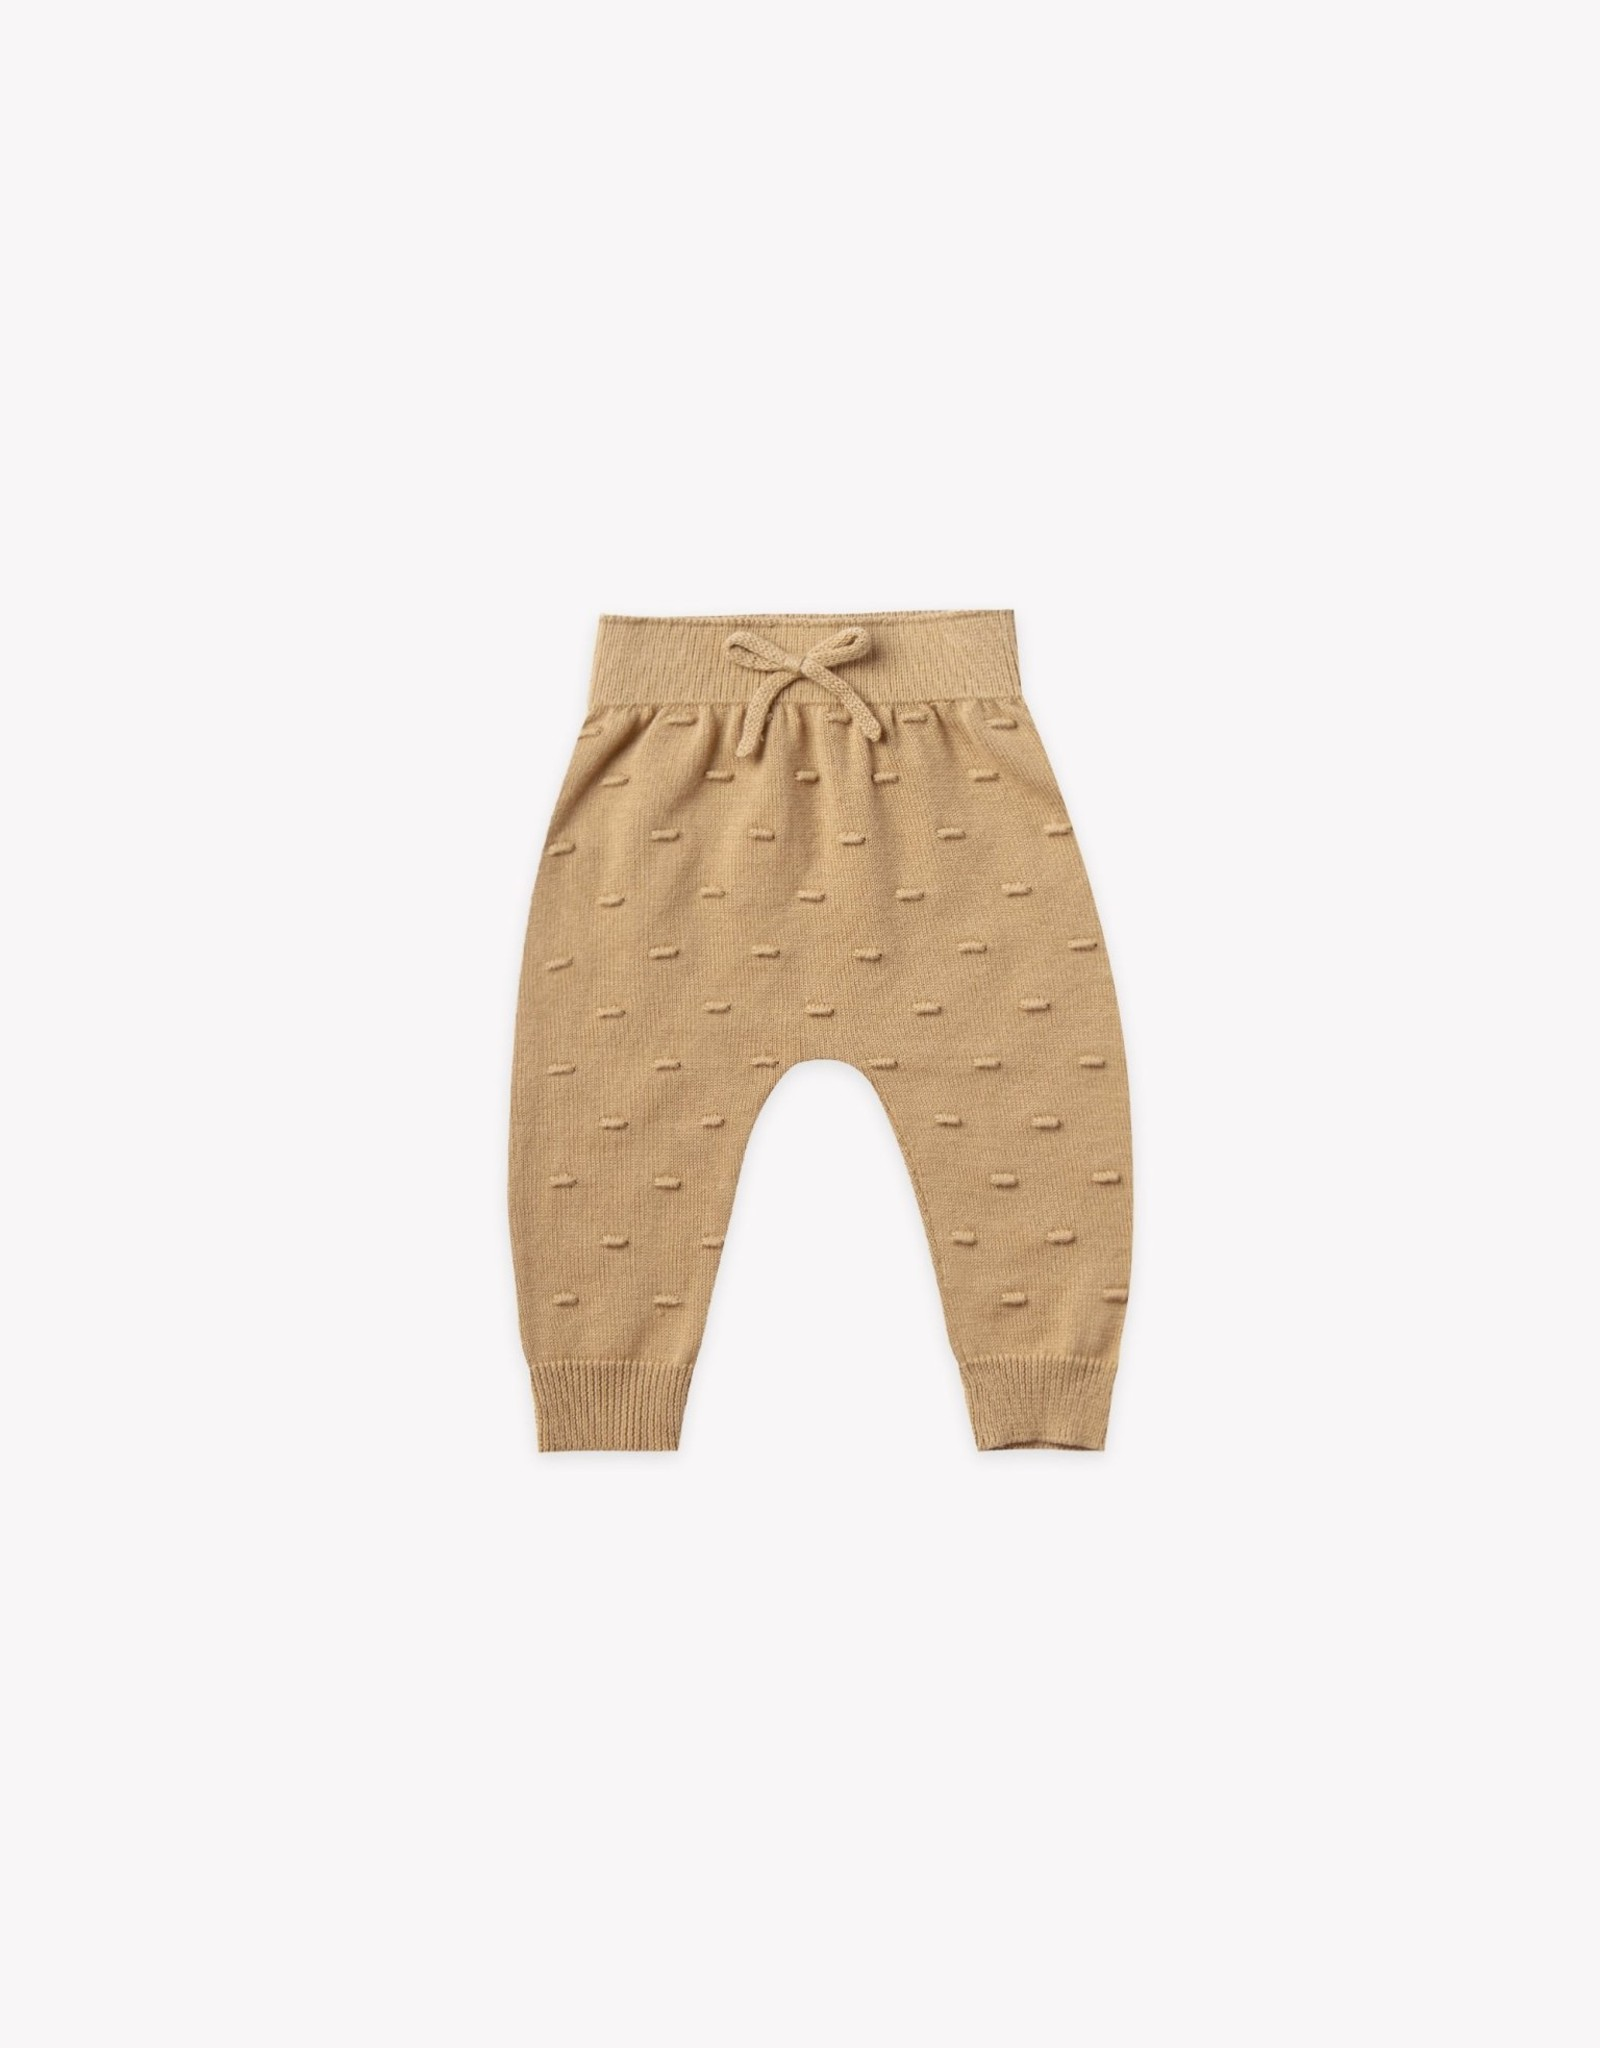 Quincy Mae Quincy Mae Knit Pant